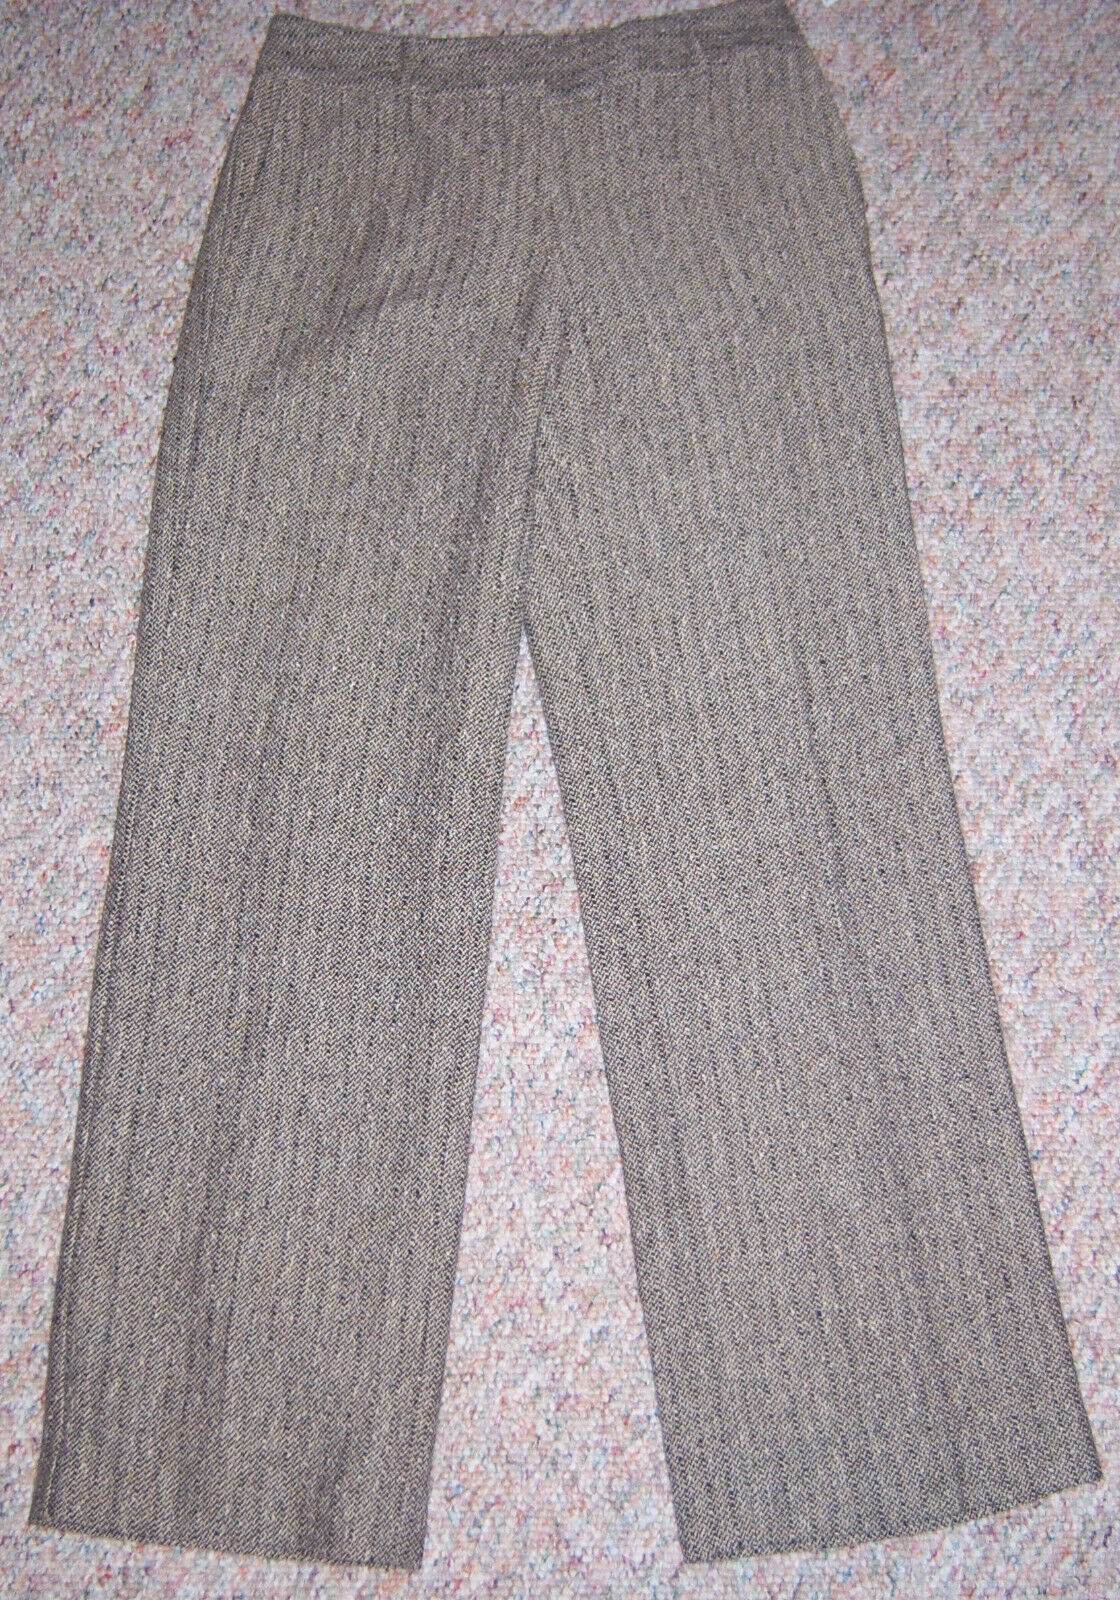 TALBOTS Brown Tan Tweed Fully Lined Wool Cotton Dress Pants Size 2P 2 Petite NWT